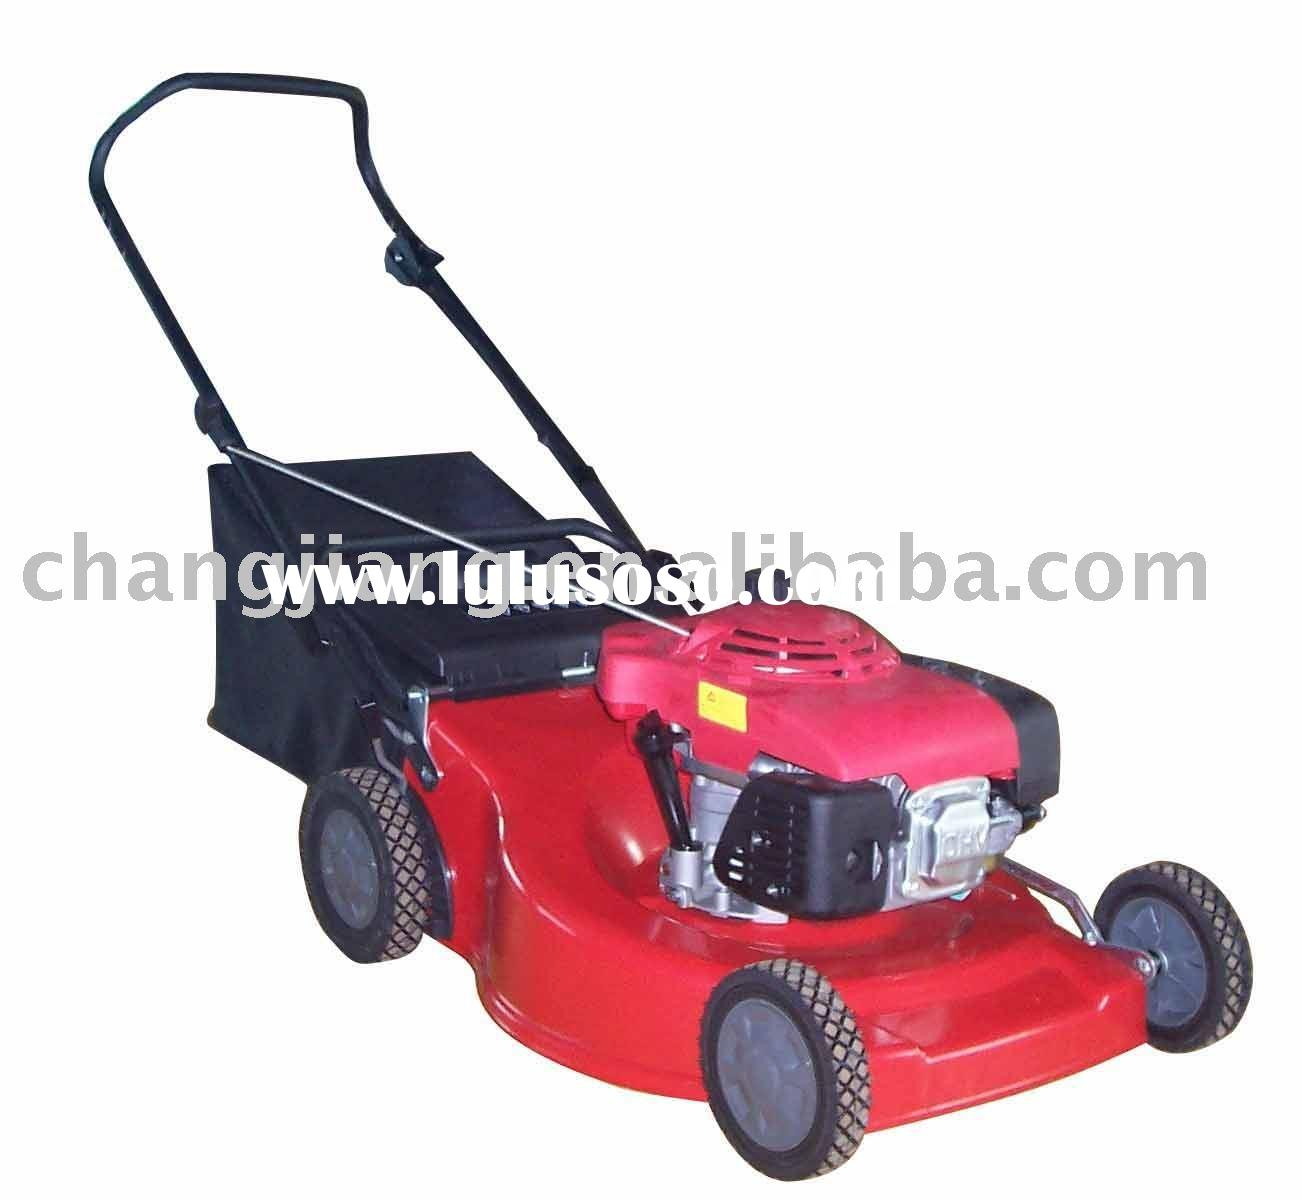 "21"" hand push gasoline lawn mower with bag grass cutter and garden tools (CJ21TZSH55)"